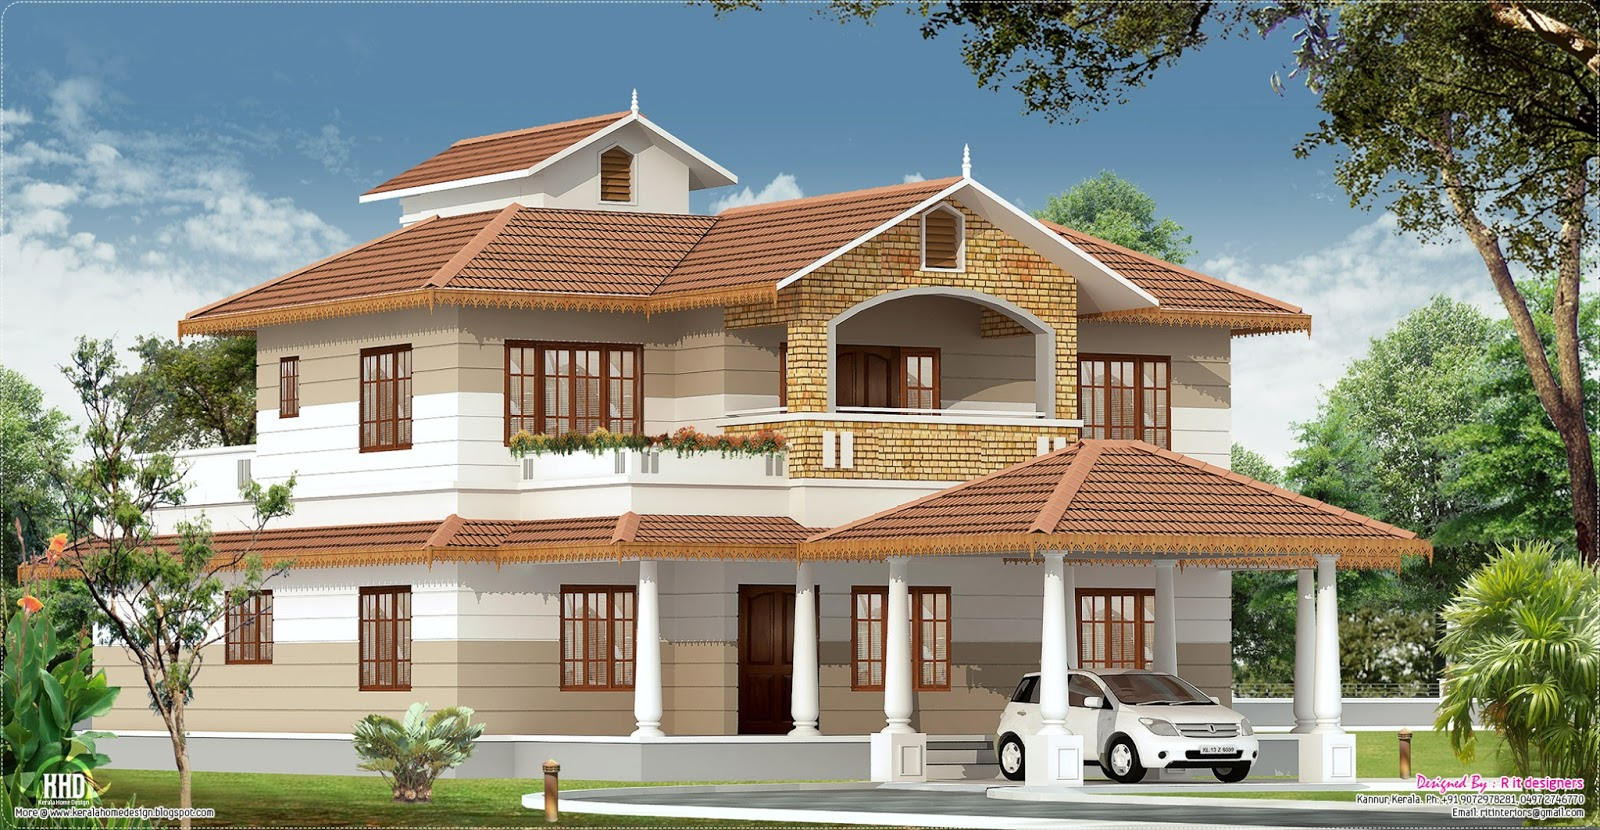 2700 kerala home with interior designs kerala for Kerala style home